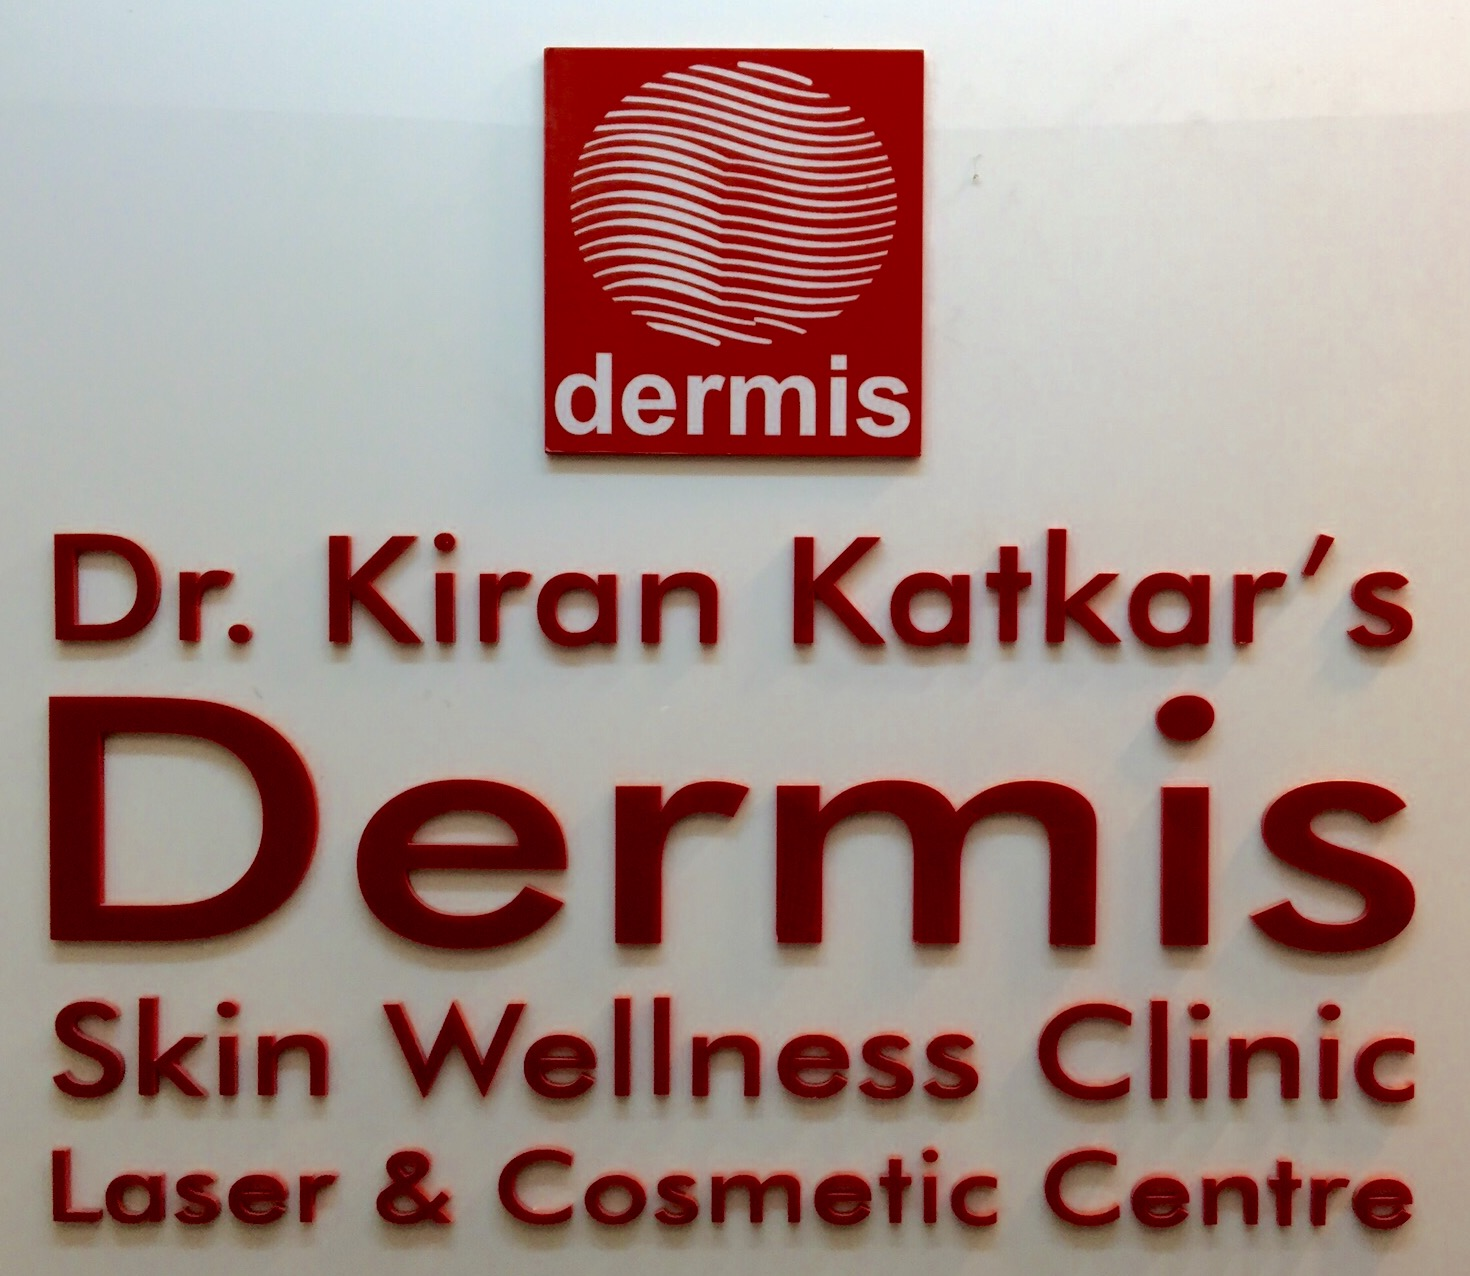 Dermis Skin Wellness Centre